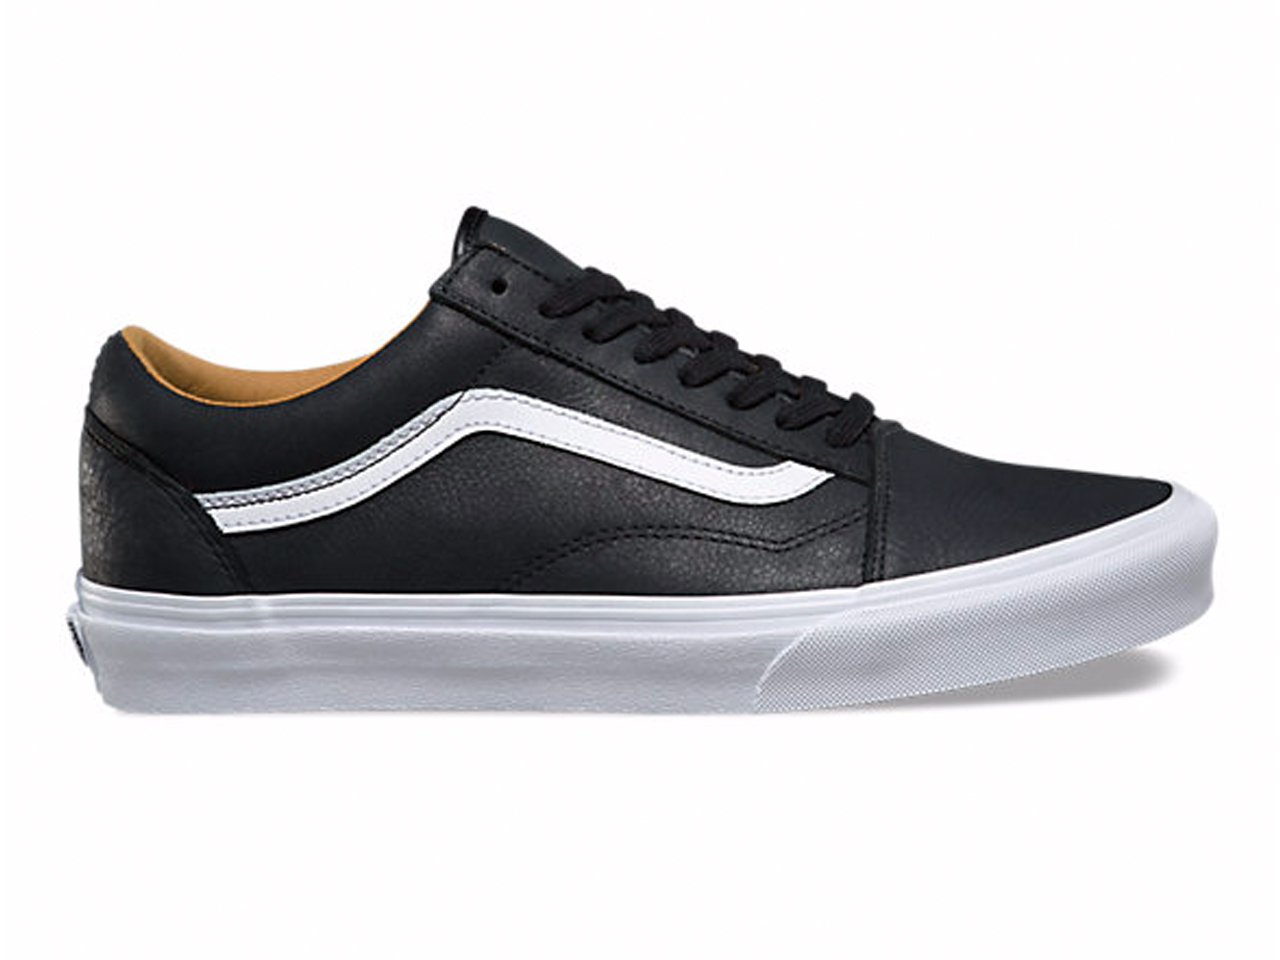 The 10 Best Black Sneakers For Men For The Fall Season